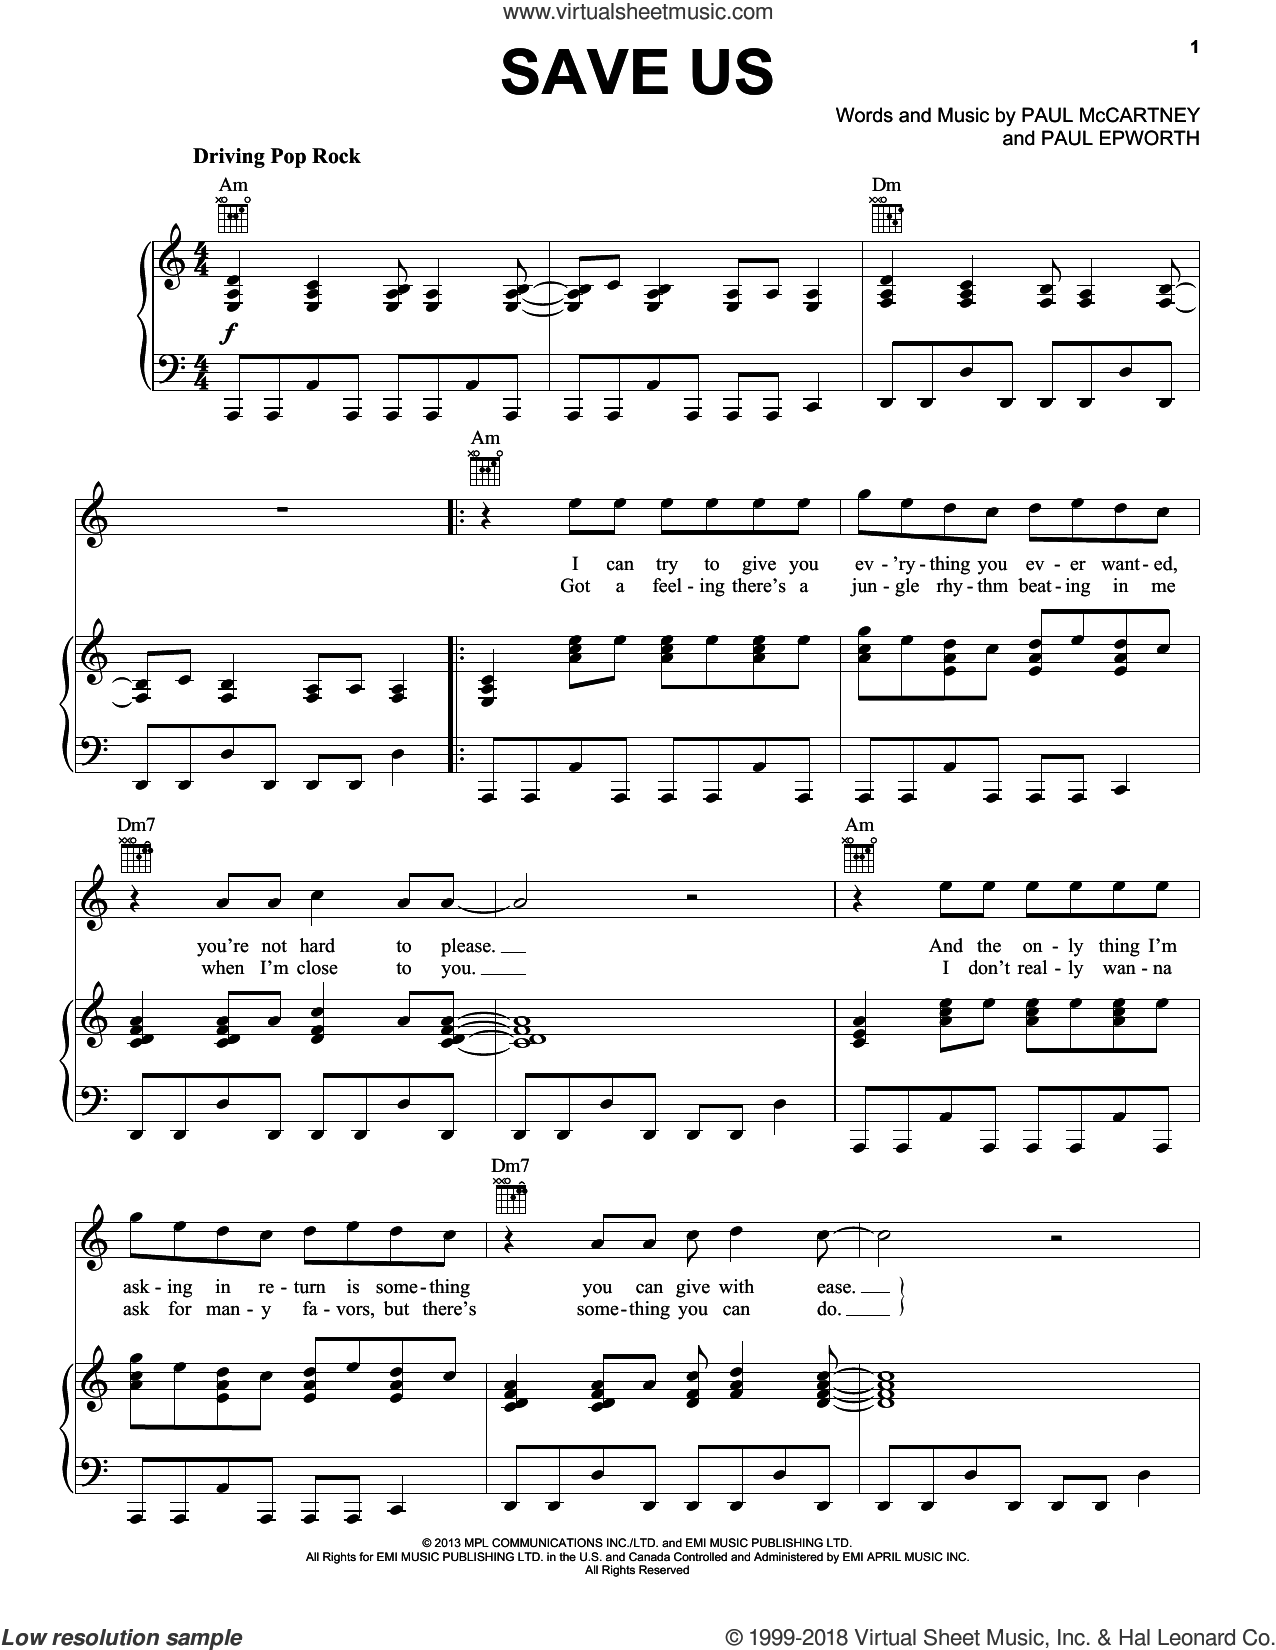 Save Us sheet music for voice, piano or guitar by Paul Epworth